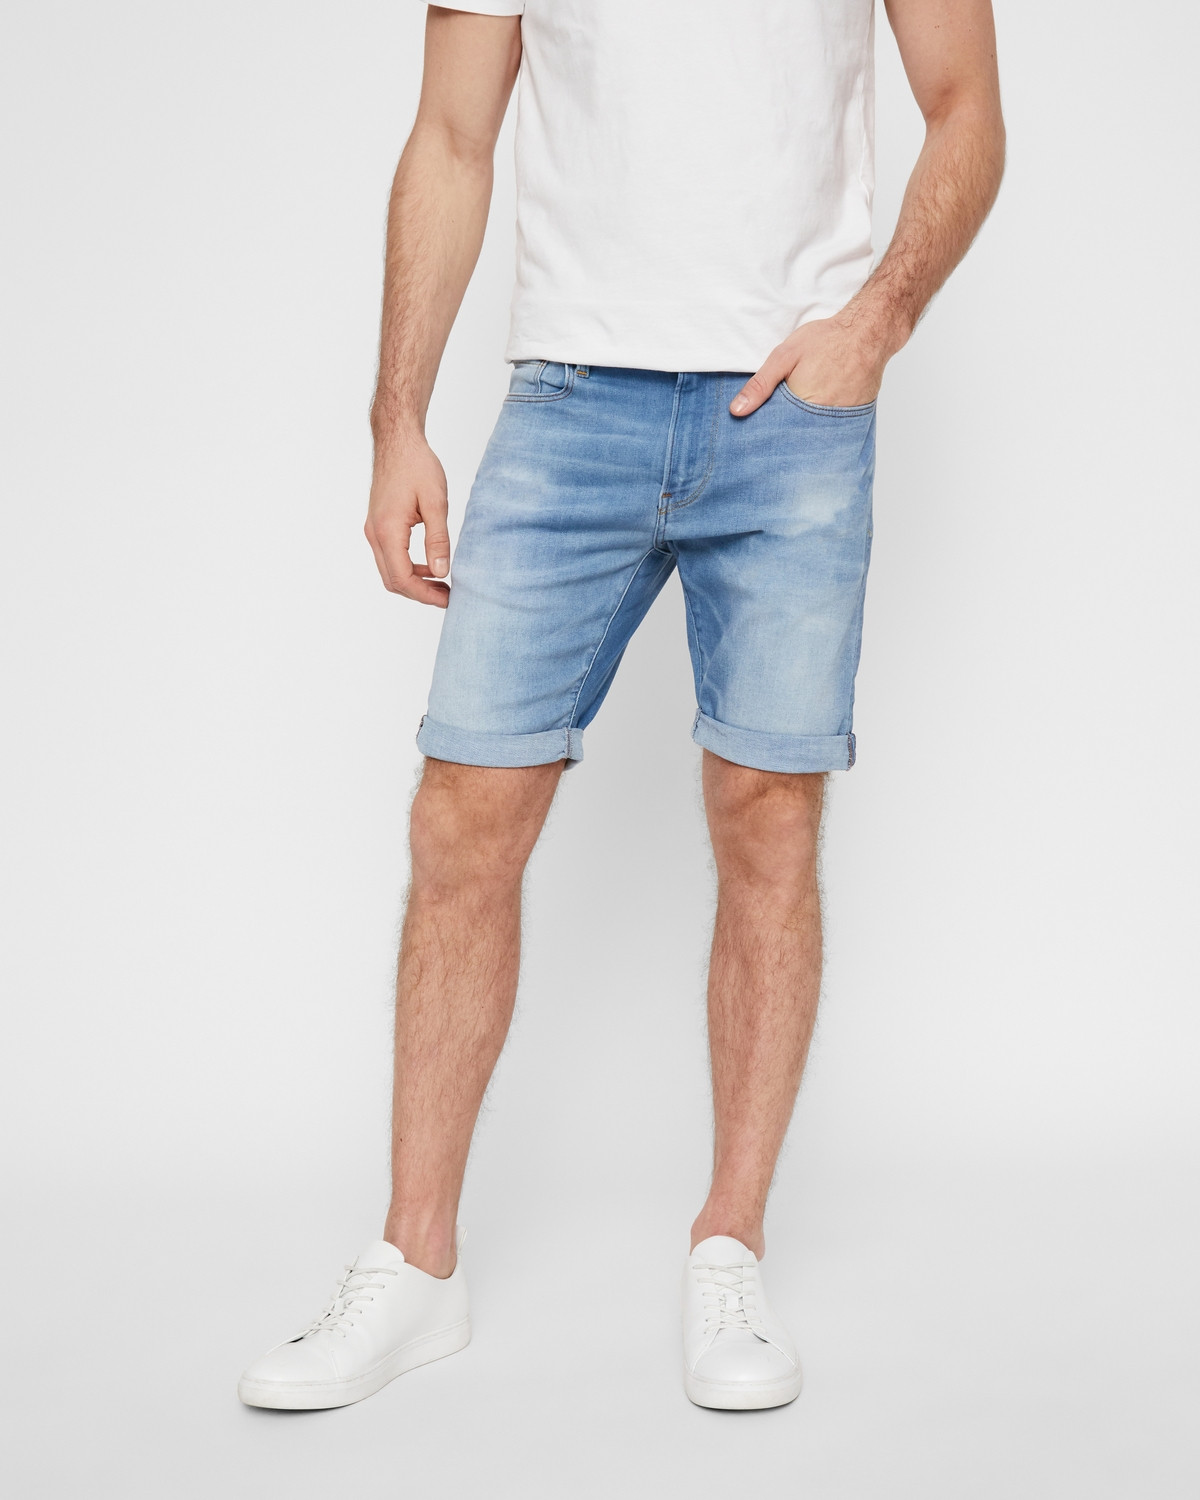 G-Star RAW 3301 Slim shorts